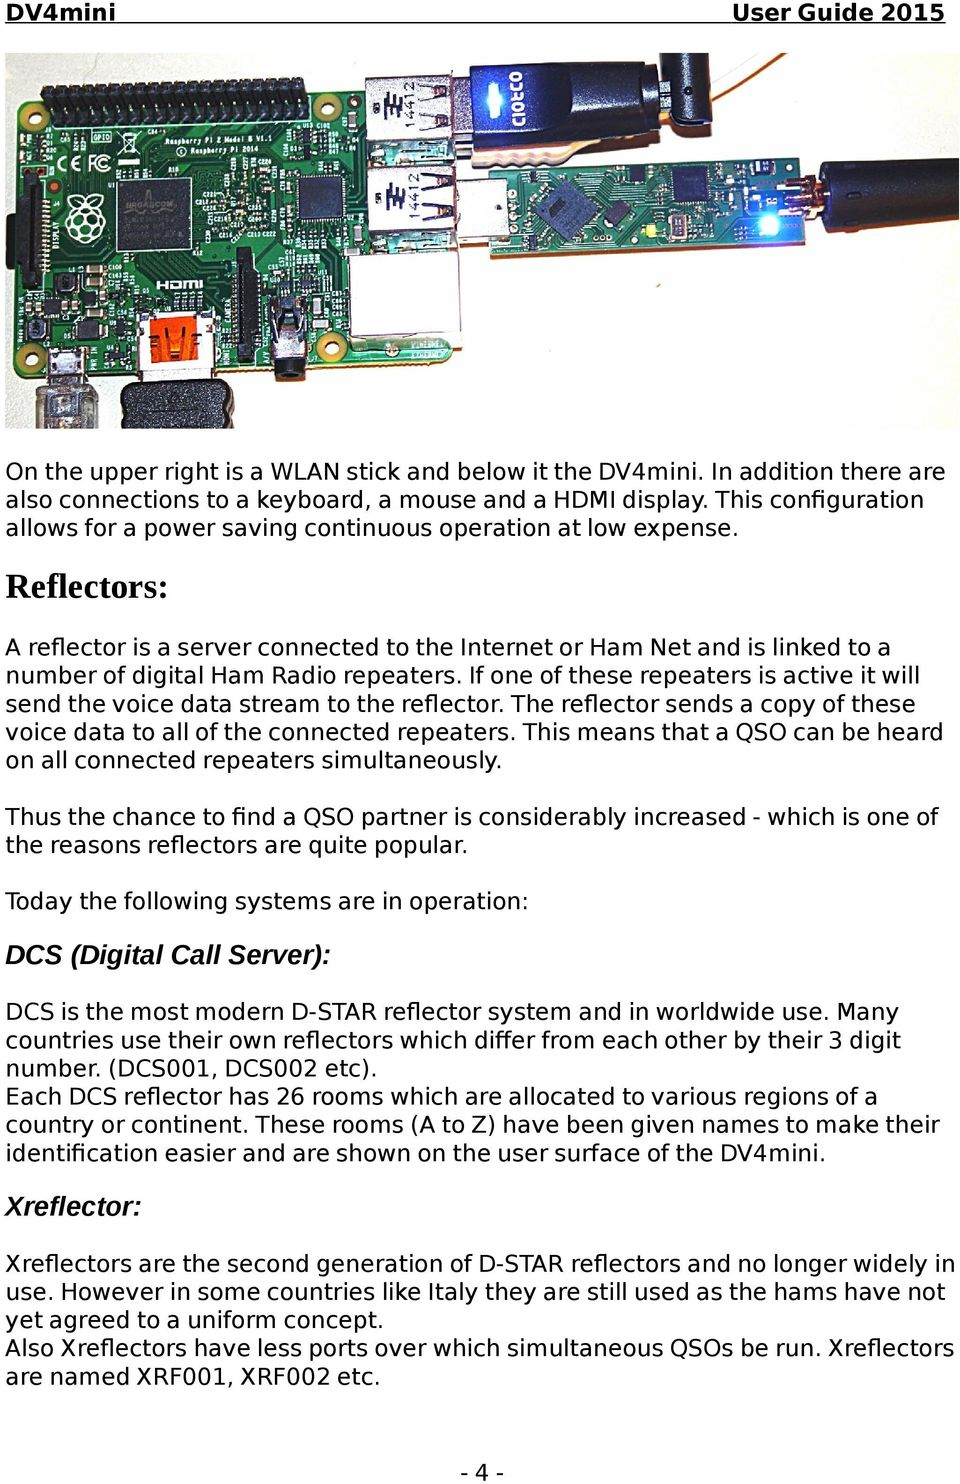 Reflectors: A refector is a server connected to the Internet or Ham Net and is linked to a number of digital Ham Radio repeaters.